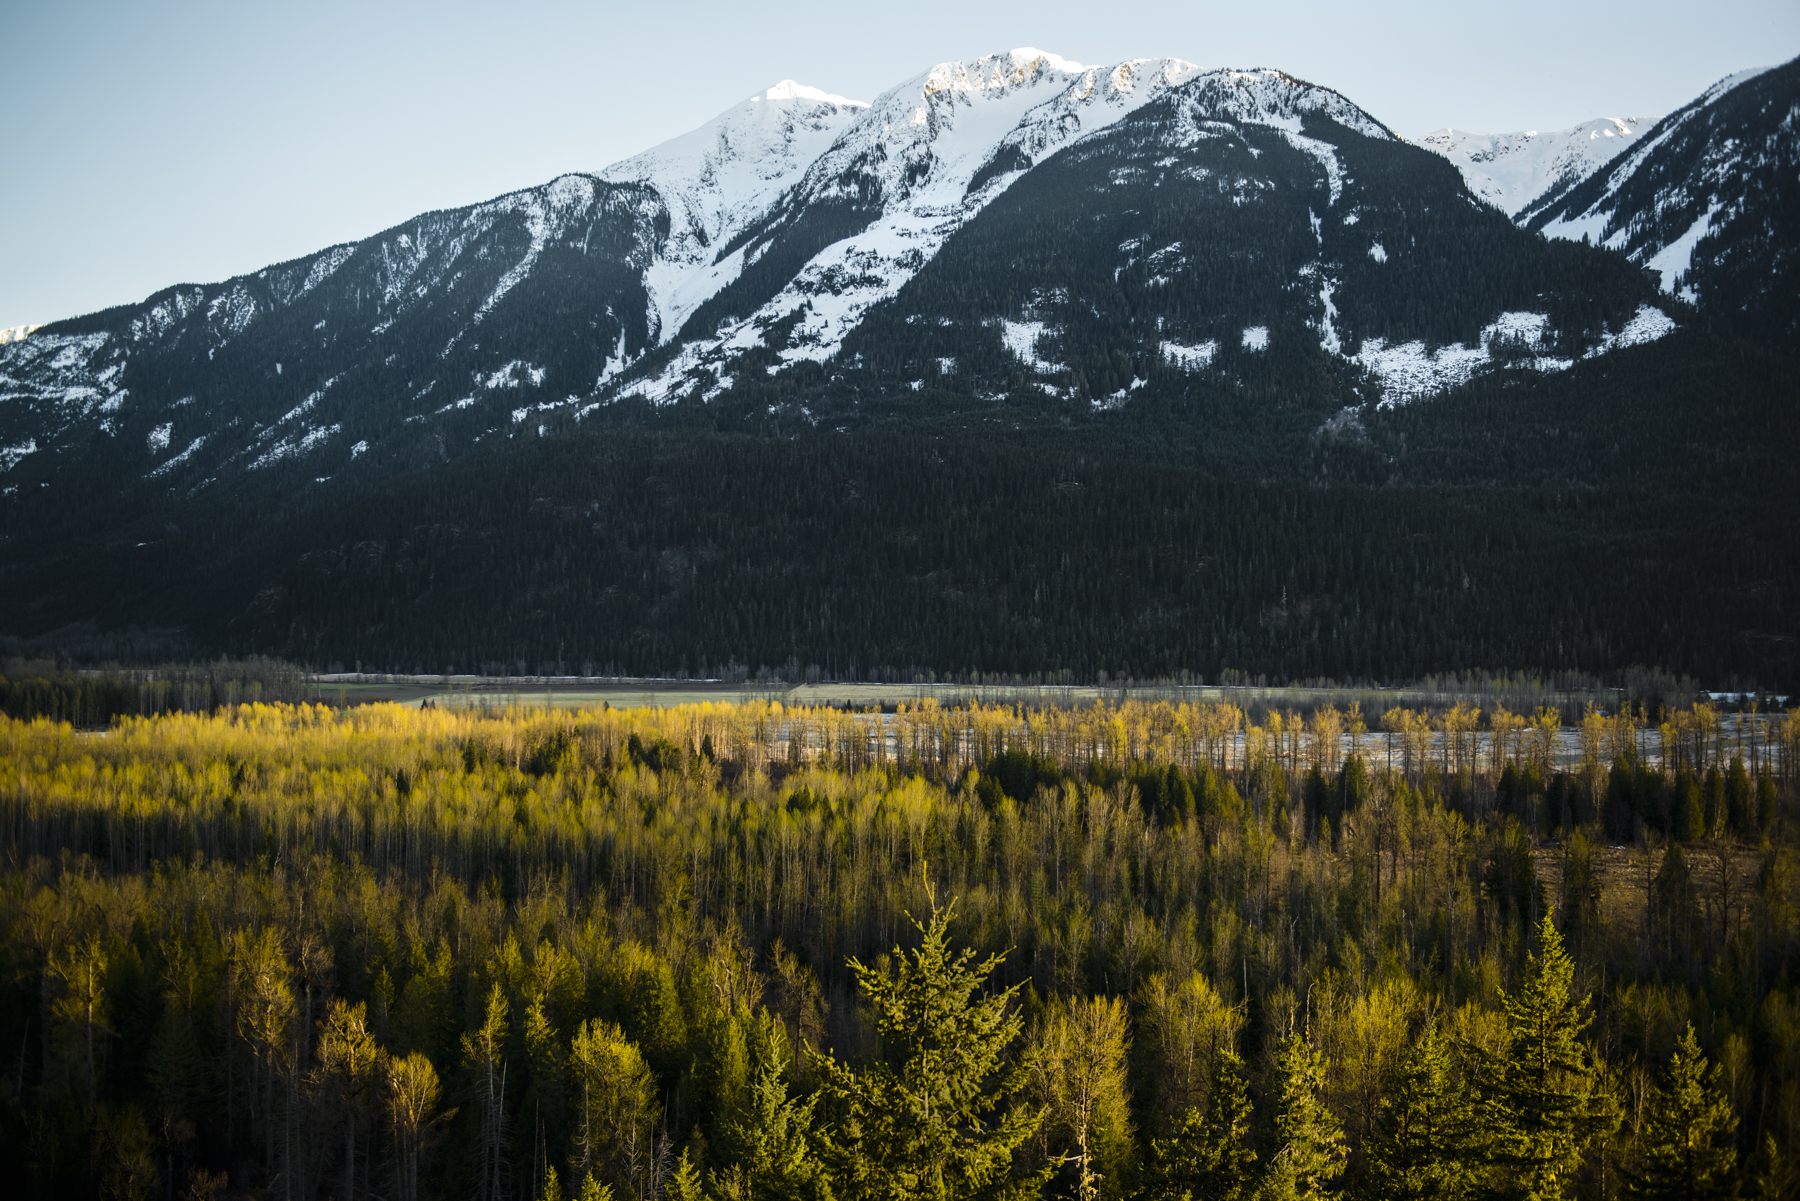 201304_pemberton_0750-Edit